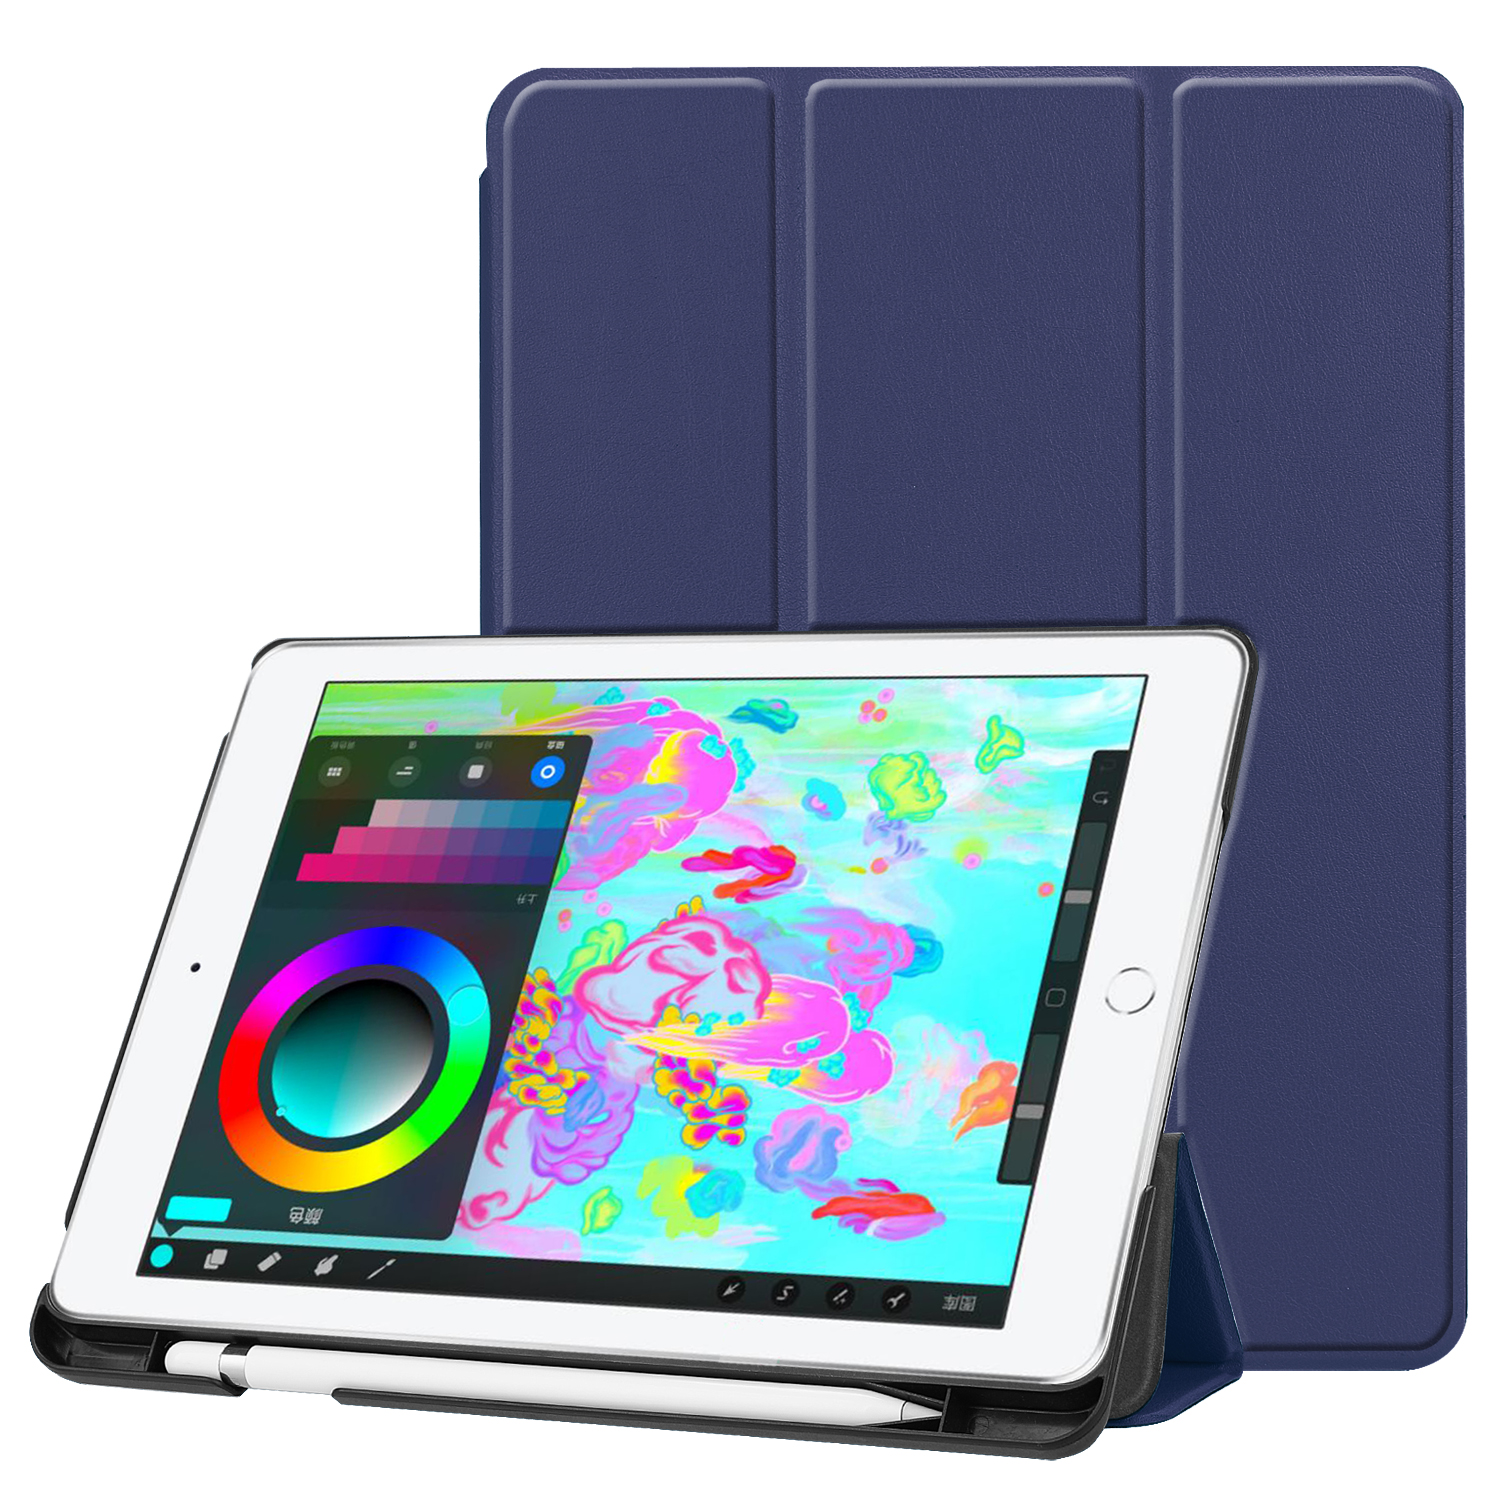 For <strong>iPad</strong> 9.7 2018/2017 Case, Lightweight Smart Leather Case Trifold Stand with Auto Sleep/Wake Function